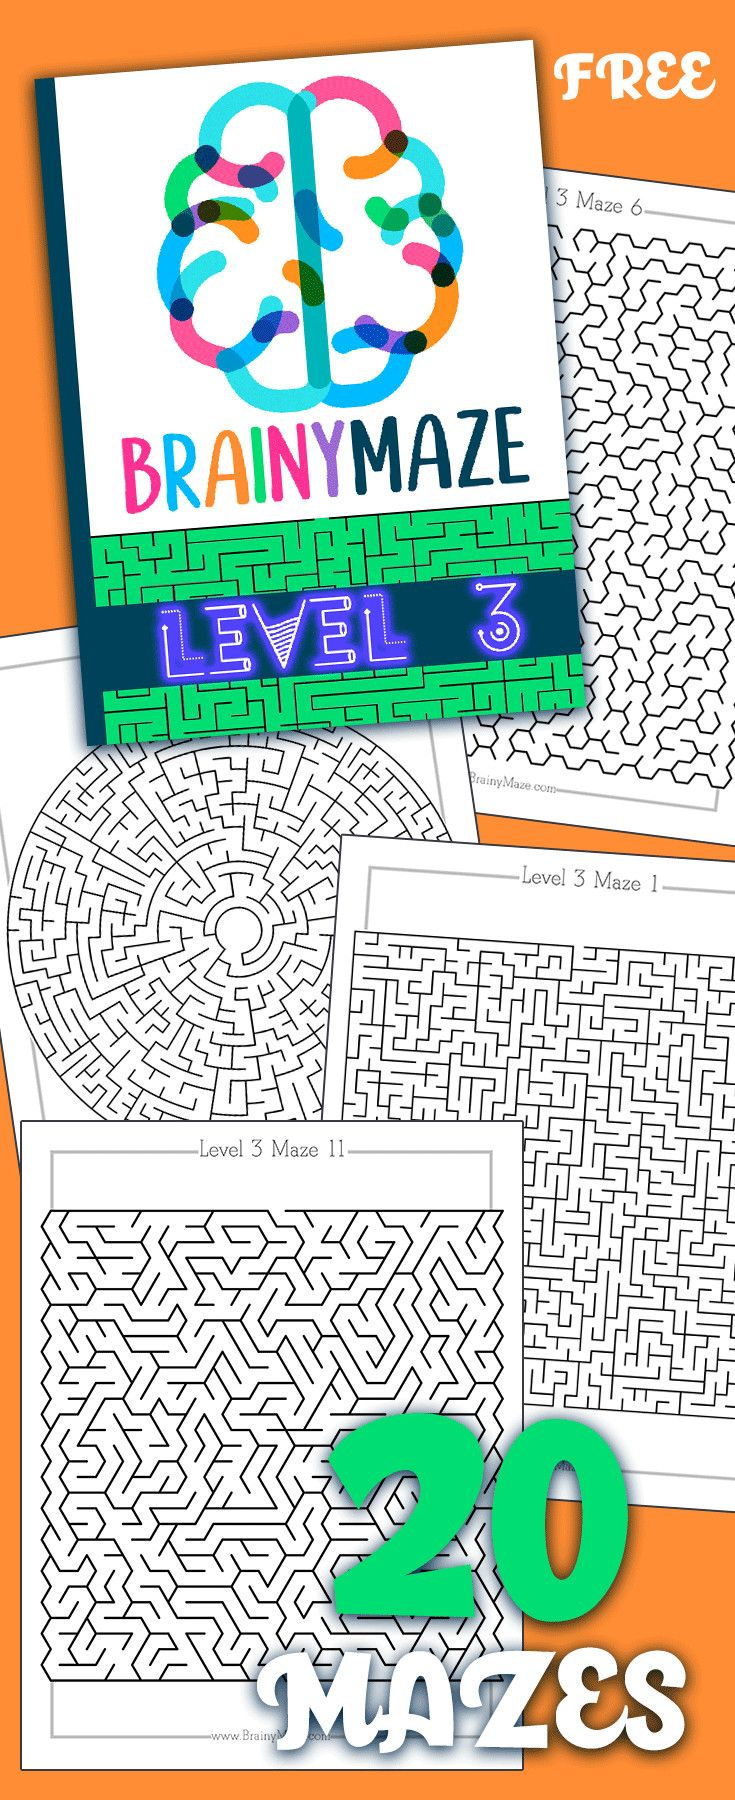 Free Mazes! Print these free mazes from home, perfect for preschool ...